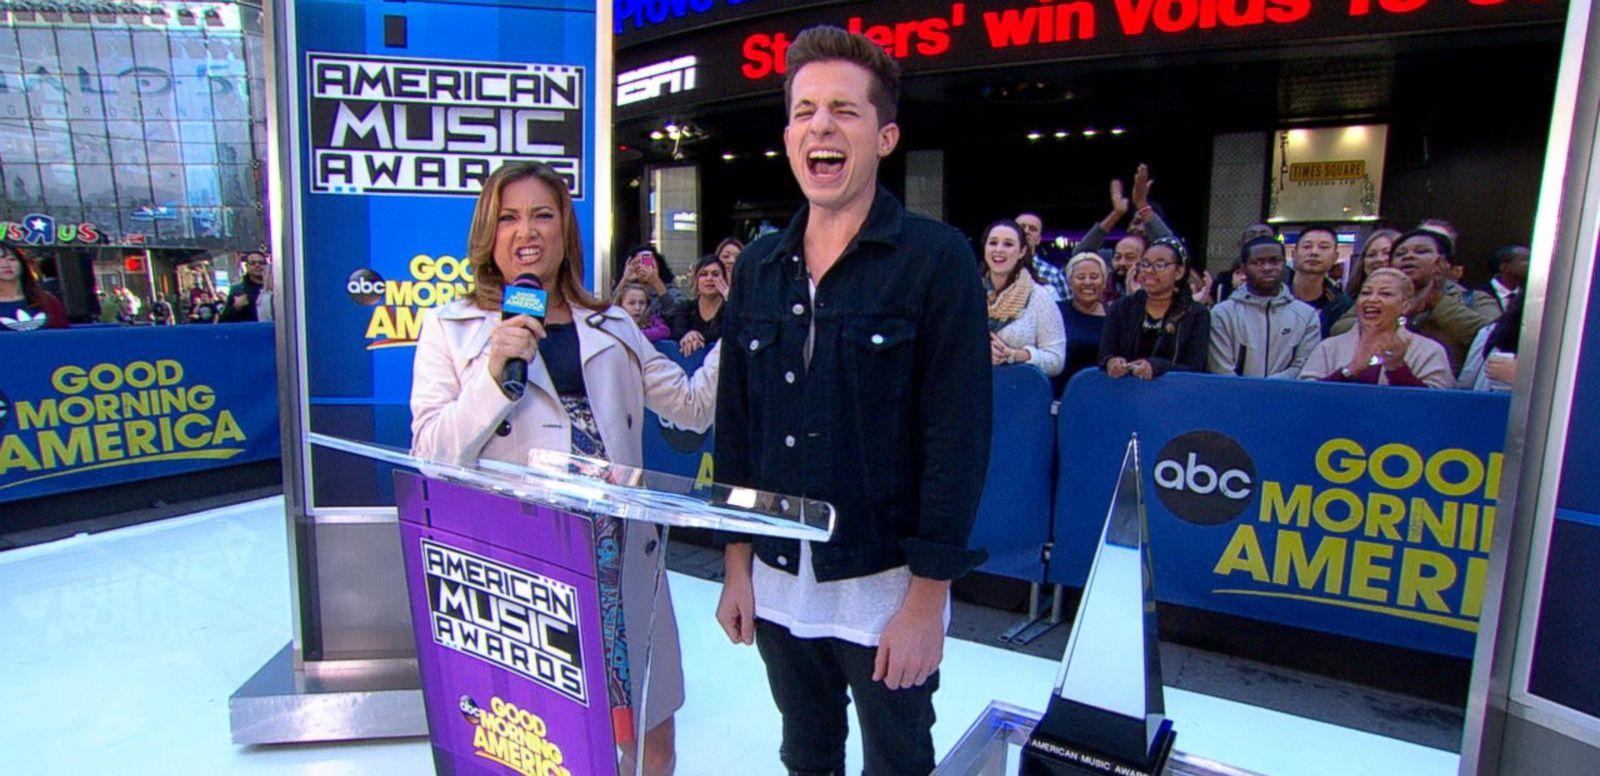 VIDEO: Charlie Puth announce 2015 American Music Award nominees.